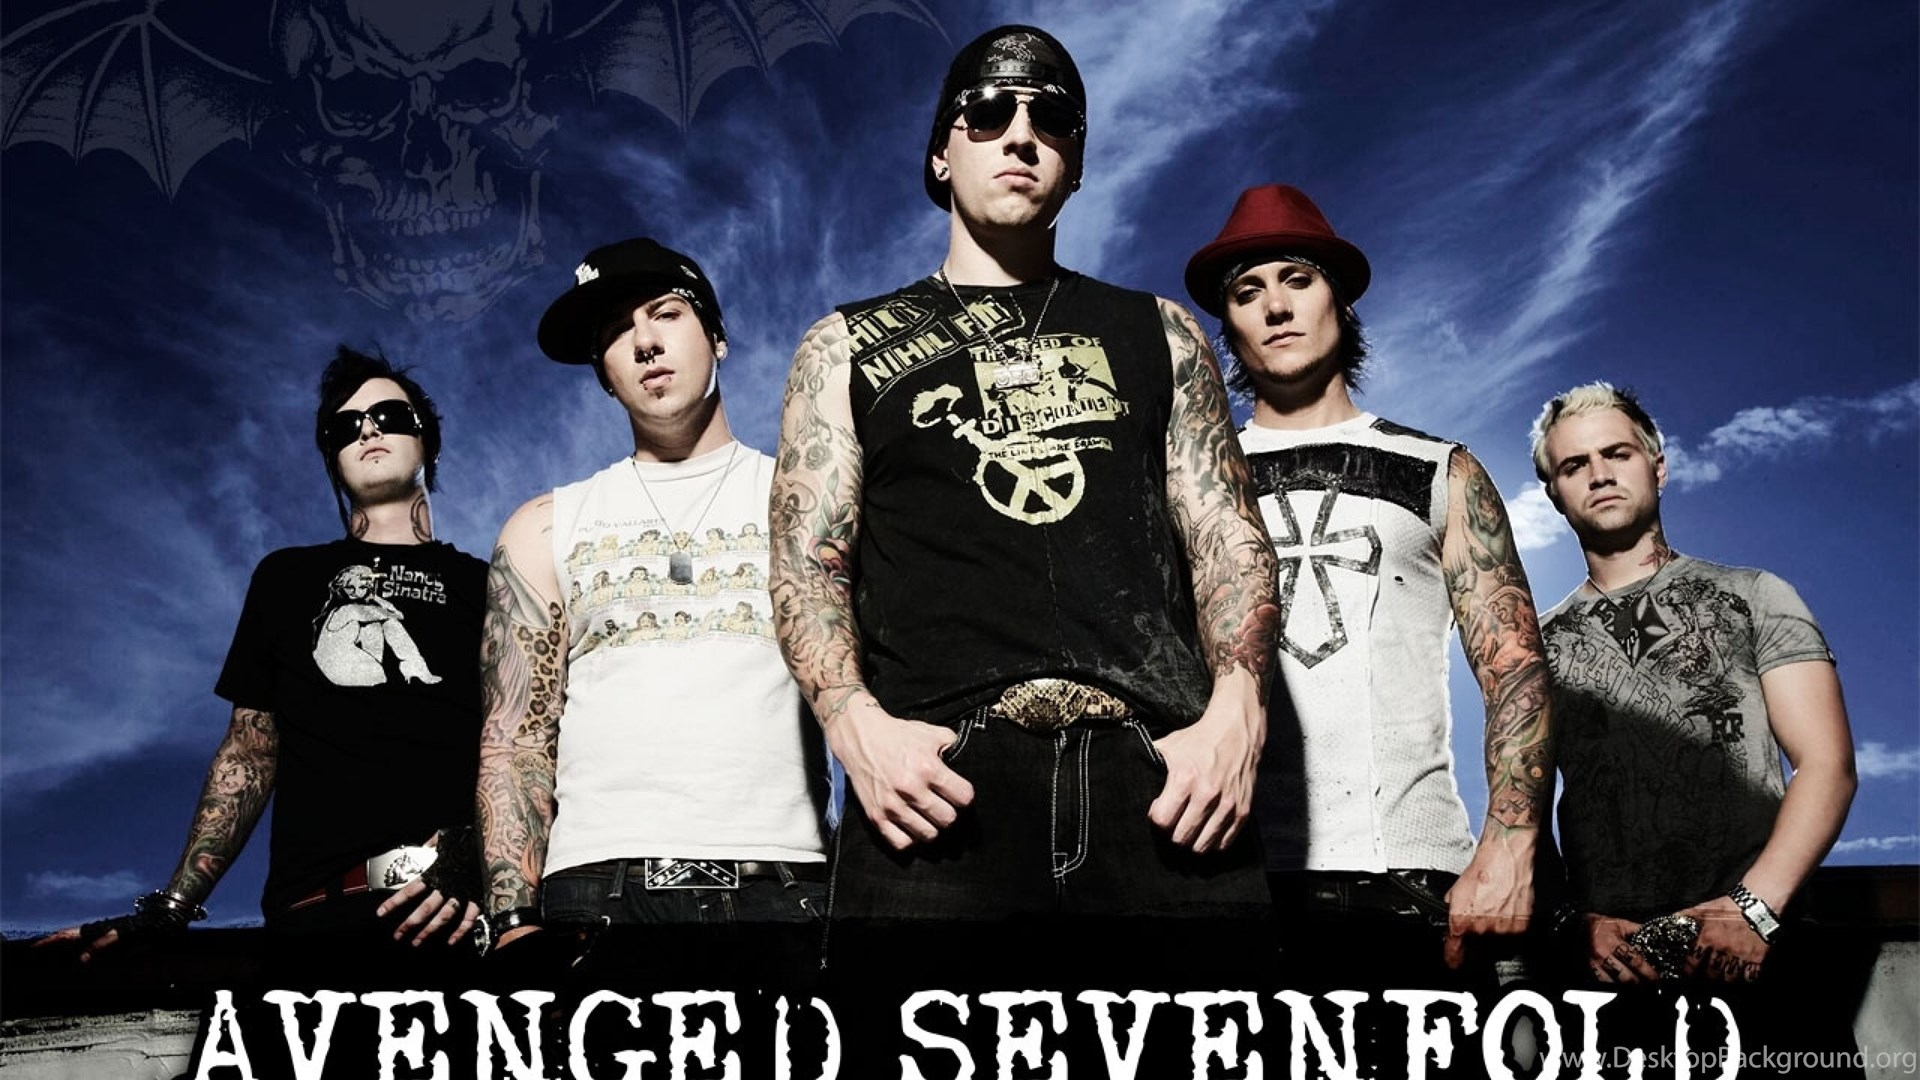 Download Wallpapers 2560x1920 Music Avenged Sevenfold